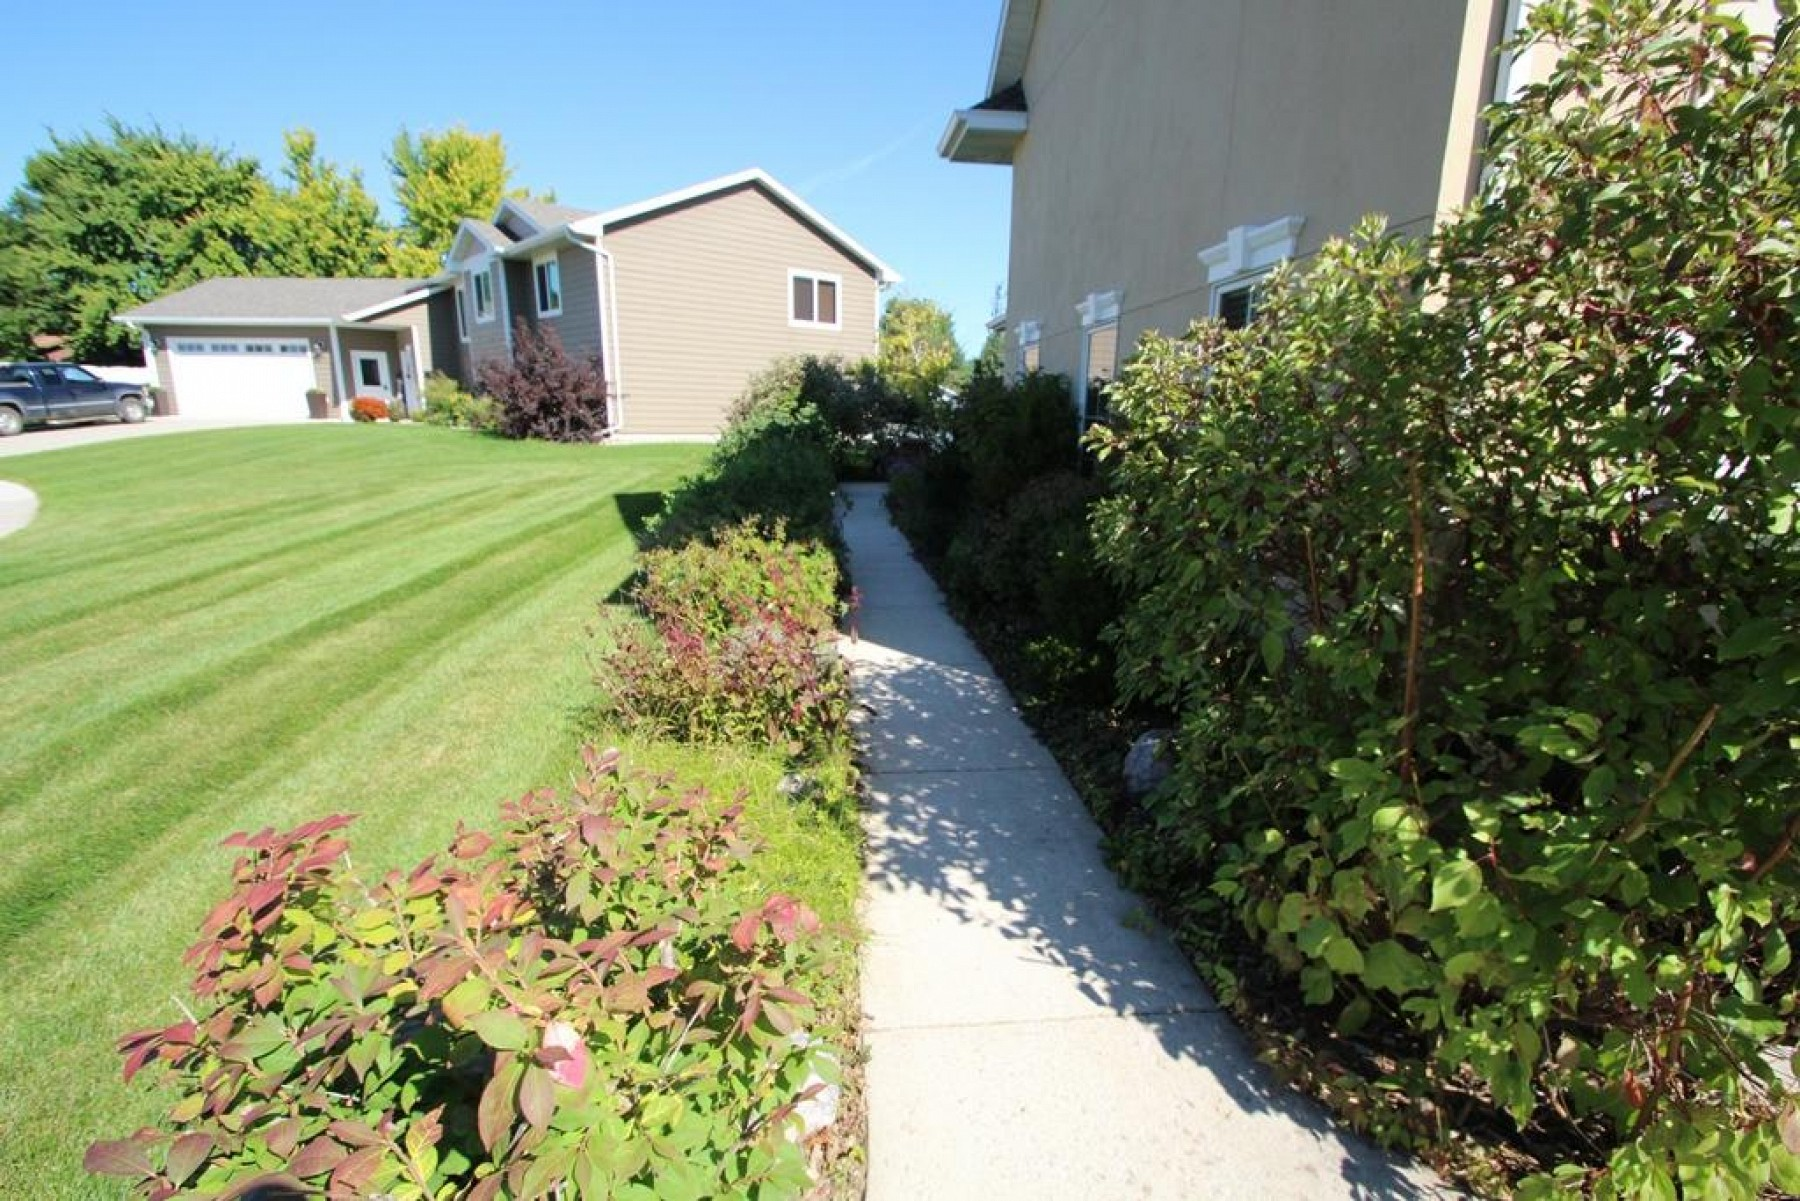 1823 OrioleTrail, Brookings, SD 57006